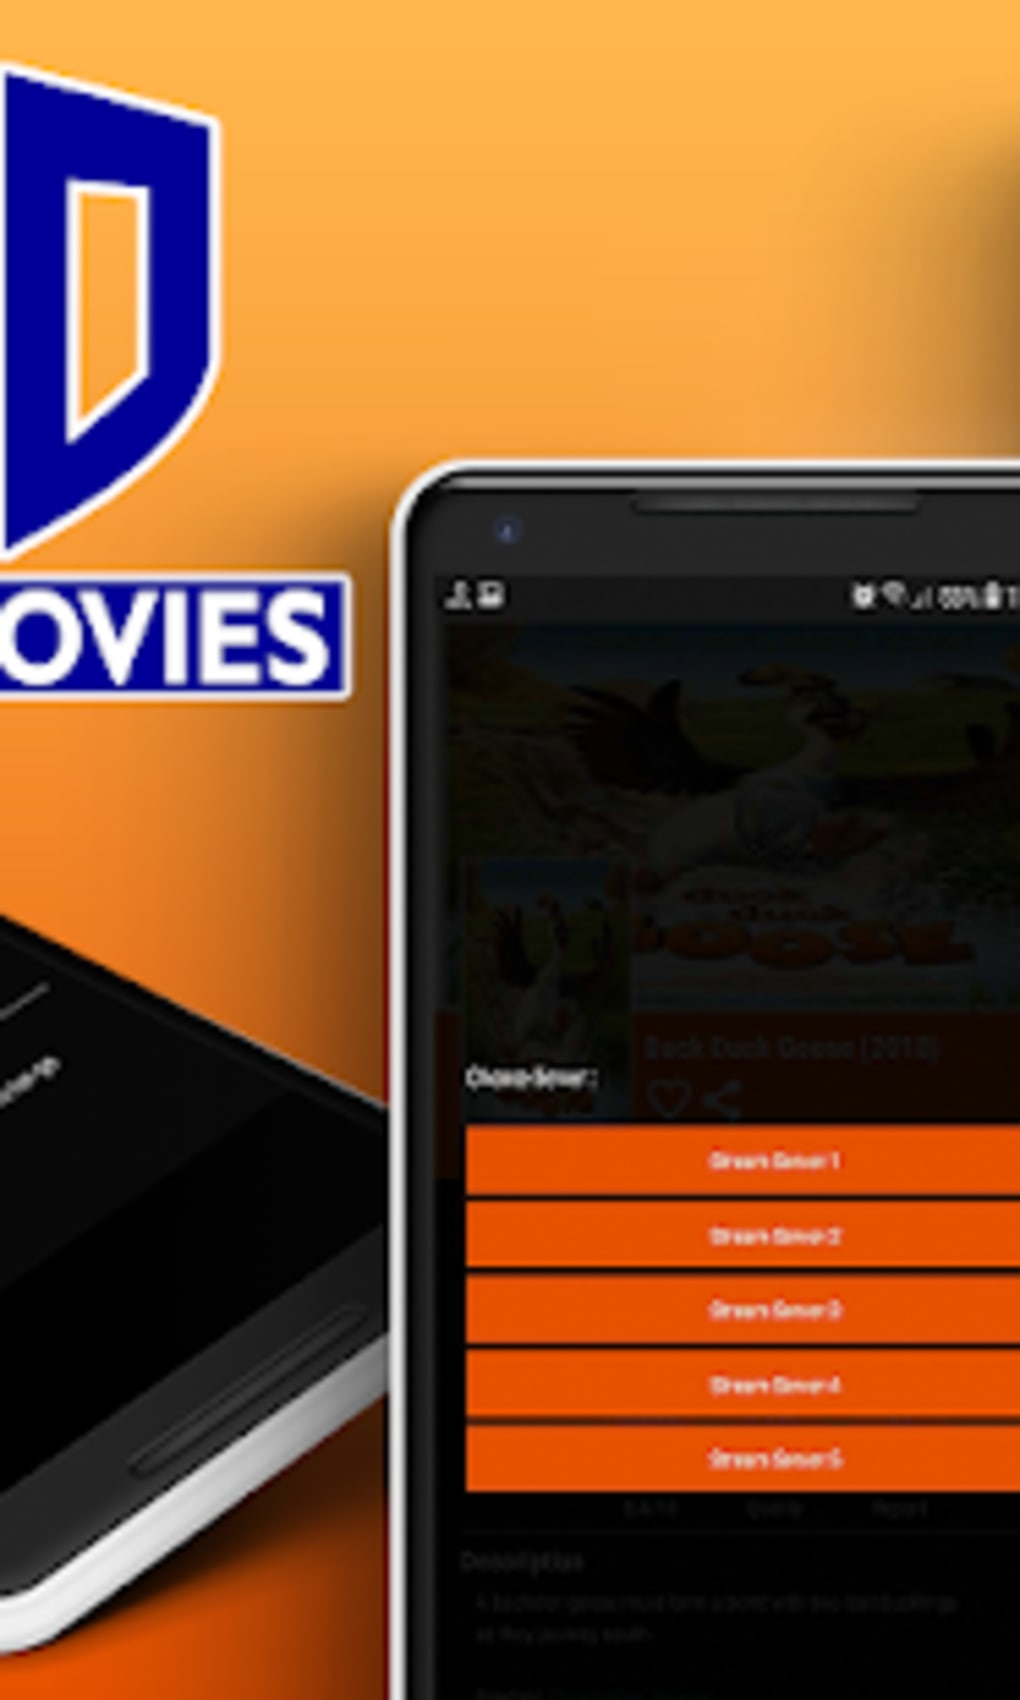 movies 4 free free hd movies 2018 for android - download